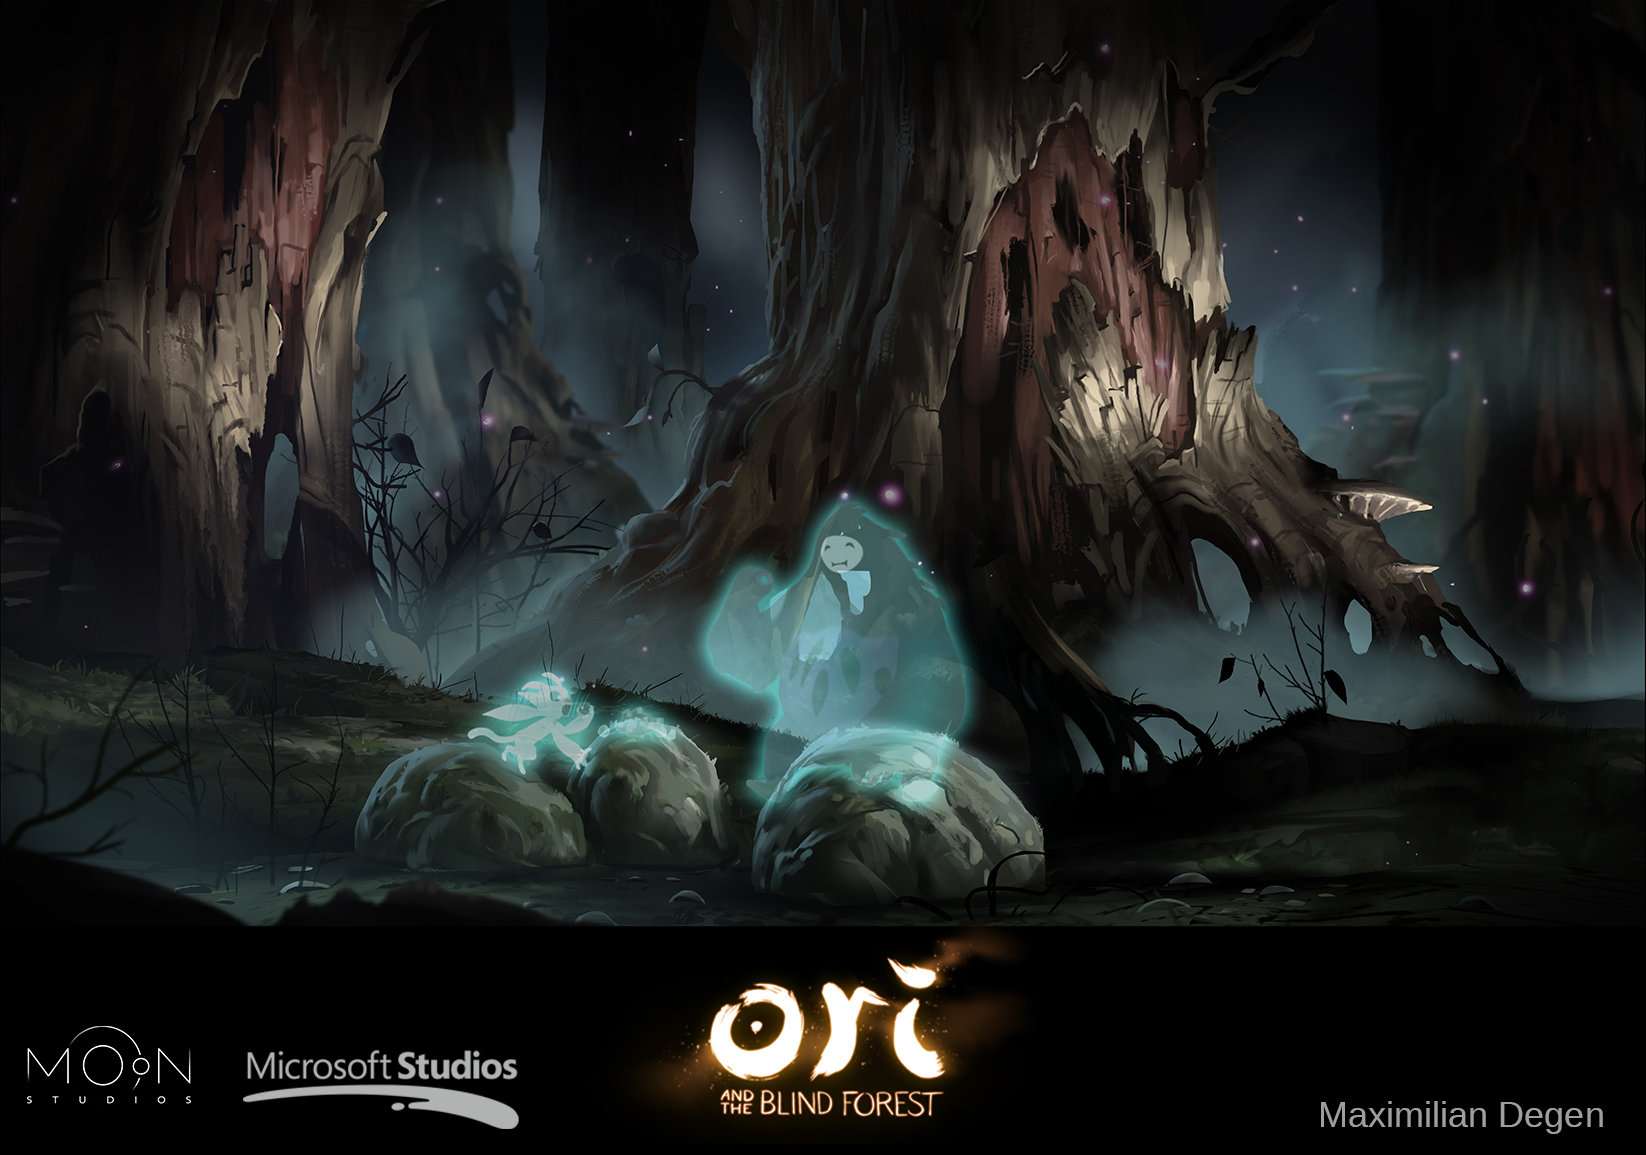 Maximilian Degen - Ori and the Blind Forest